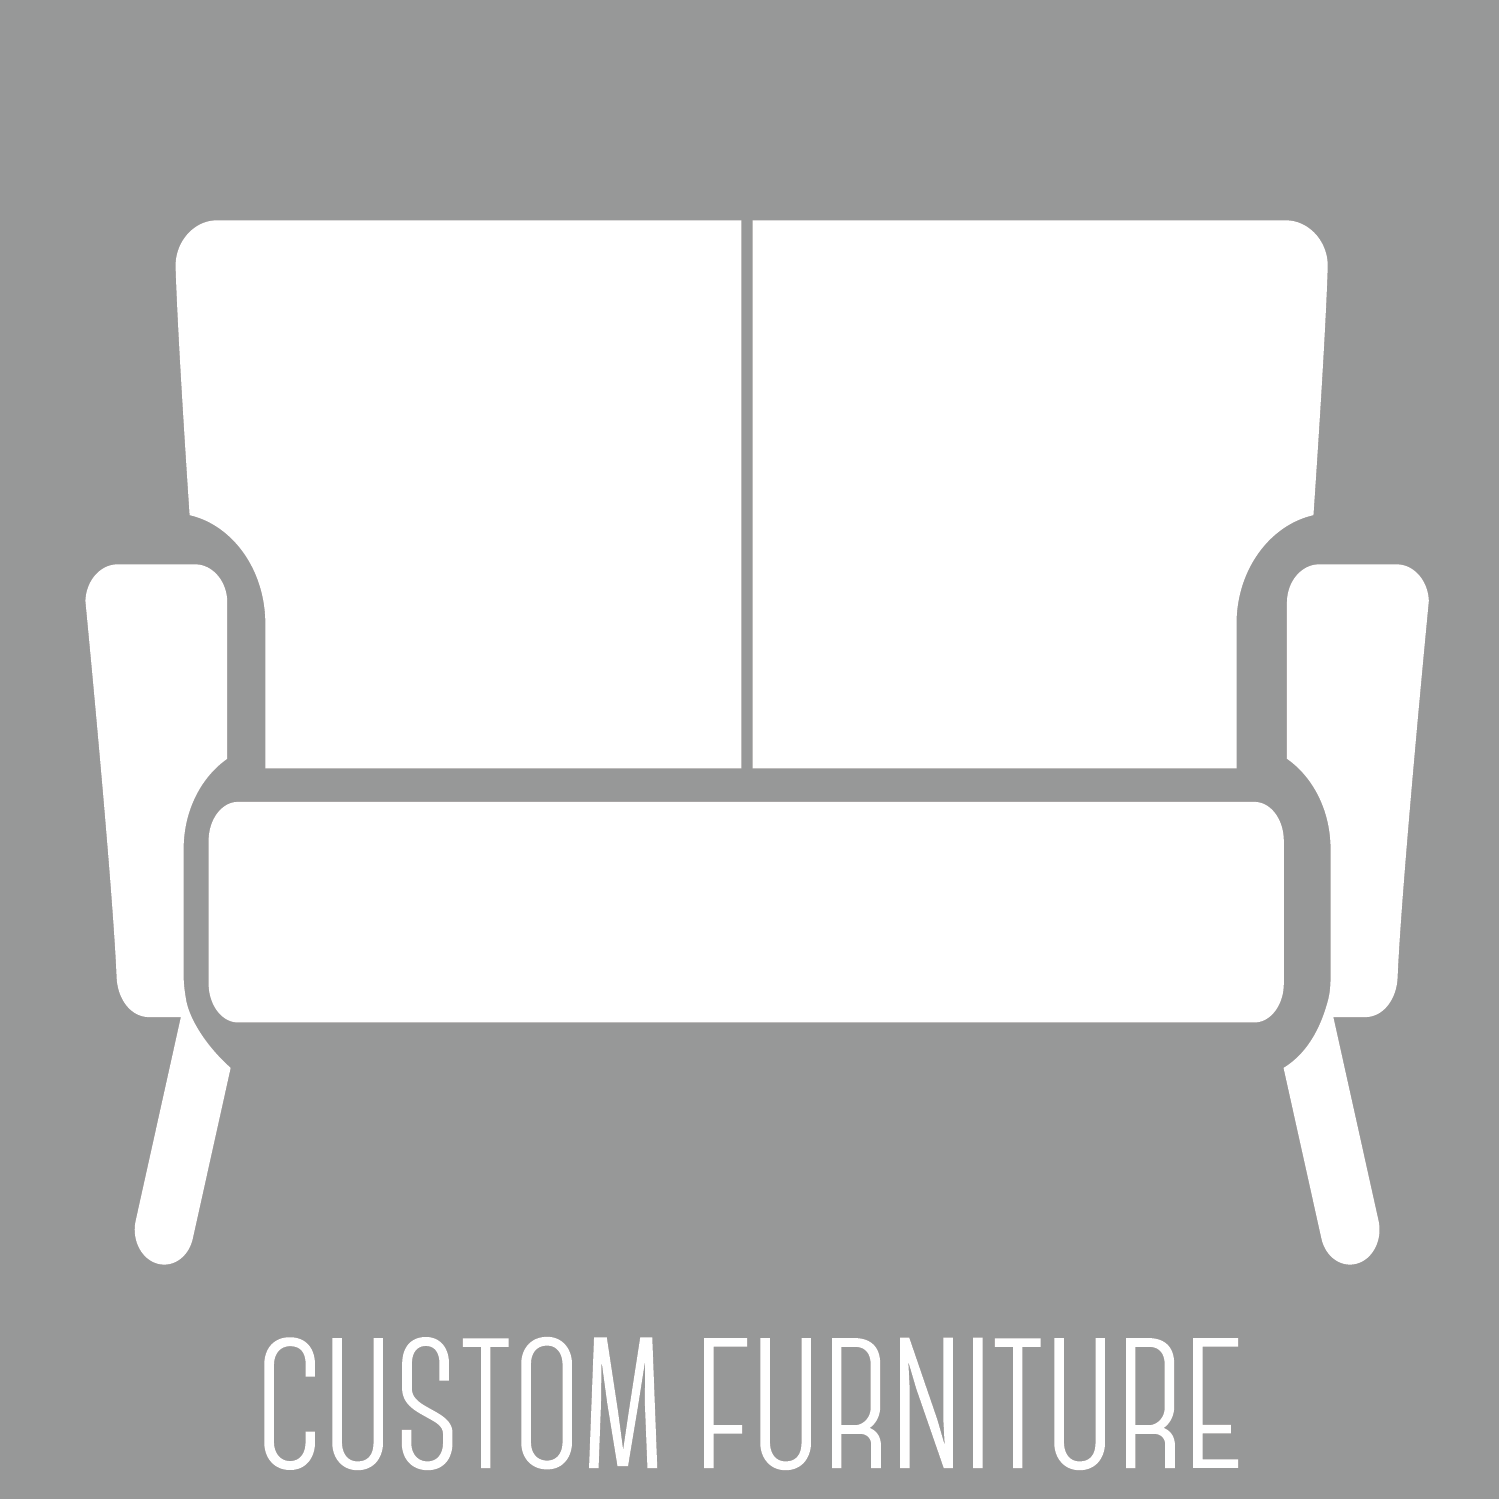 Custom Furniture.png